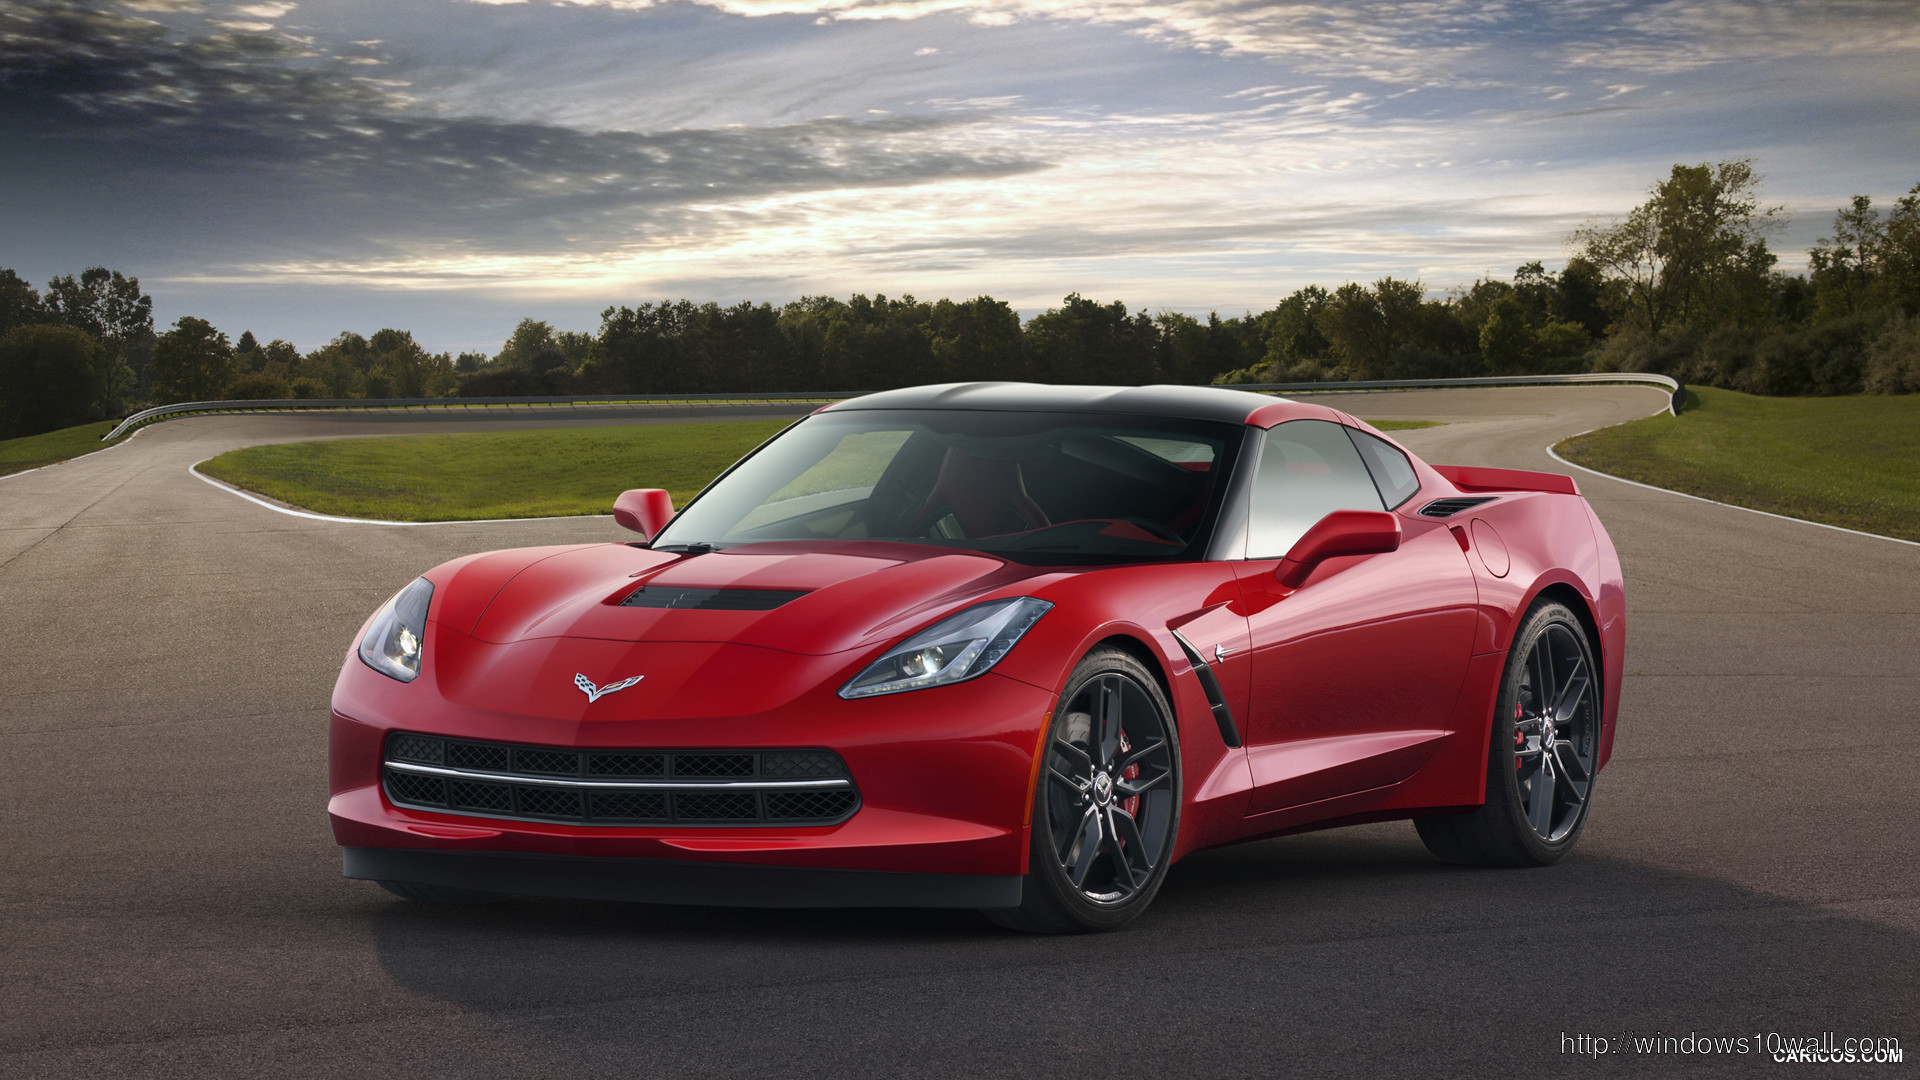 Red 2014 Corvette Stingray Wallpapers Desktop Background